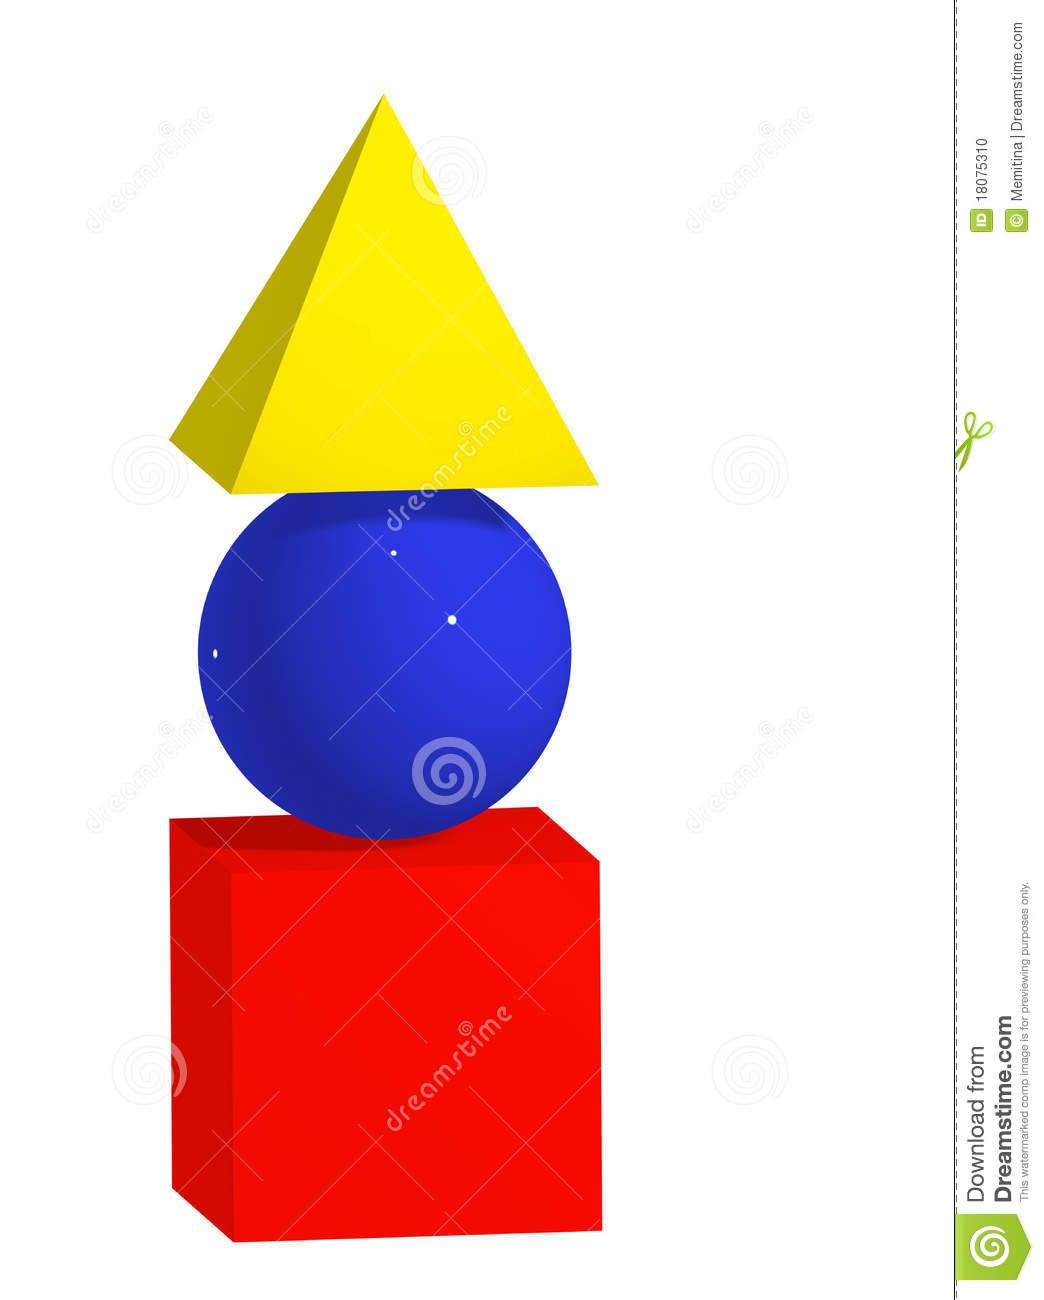 Primary Colours And Shapes Stock Photo - Image: 18075310